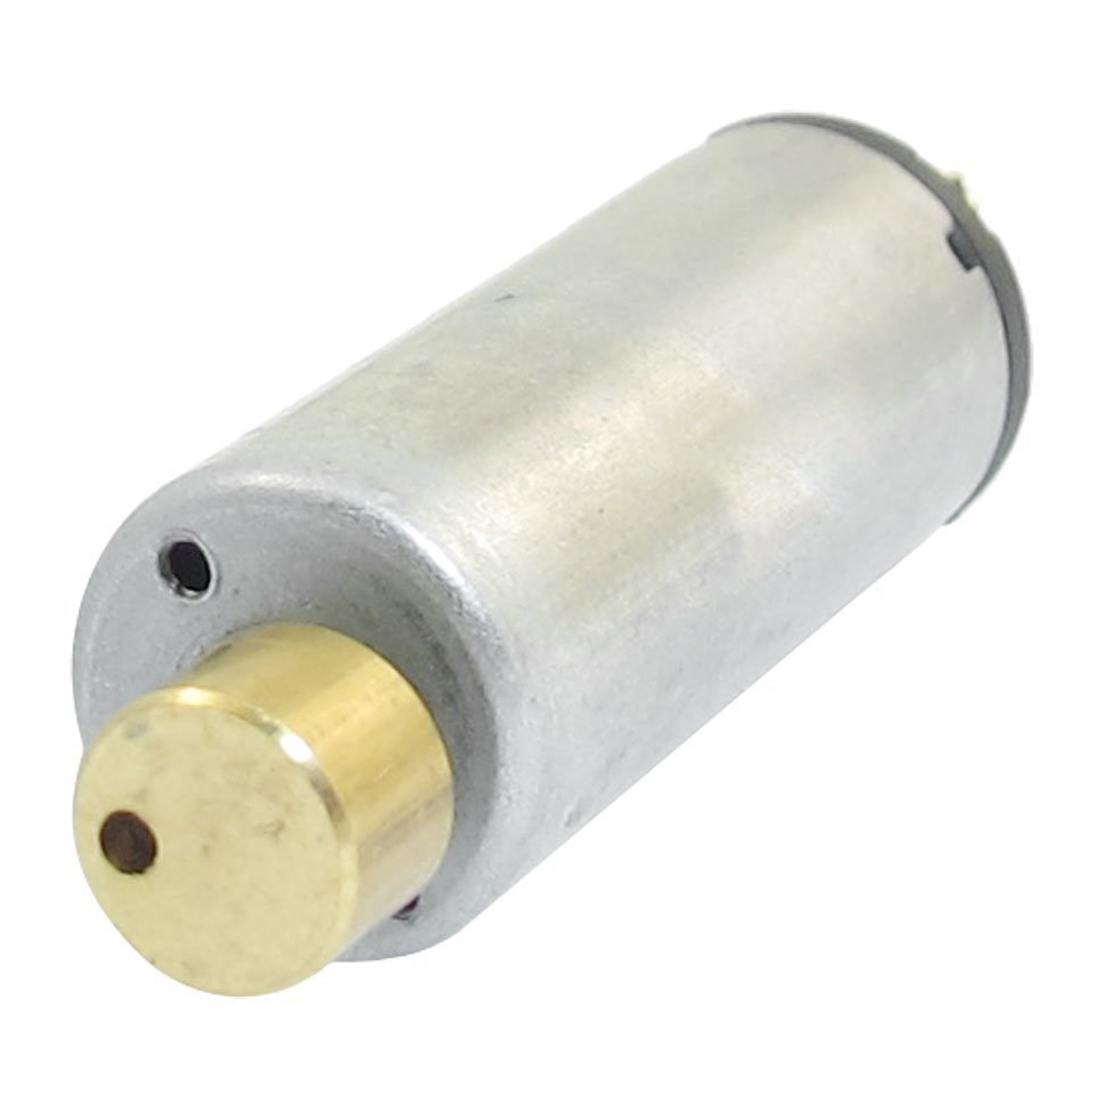 DC 1.5-6V 1750-7000RPM Output Speed Electric Mini Vibration Motor Silver+Gold